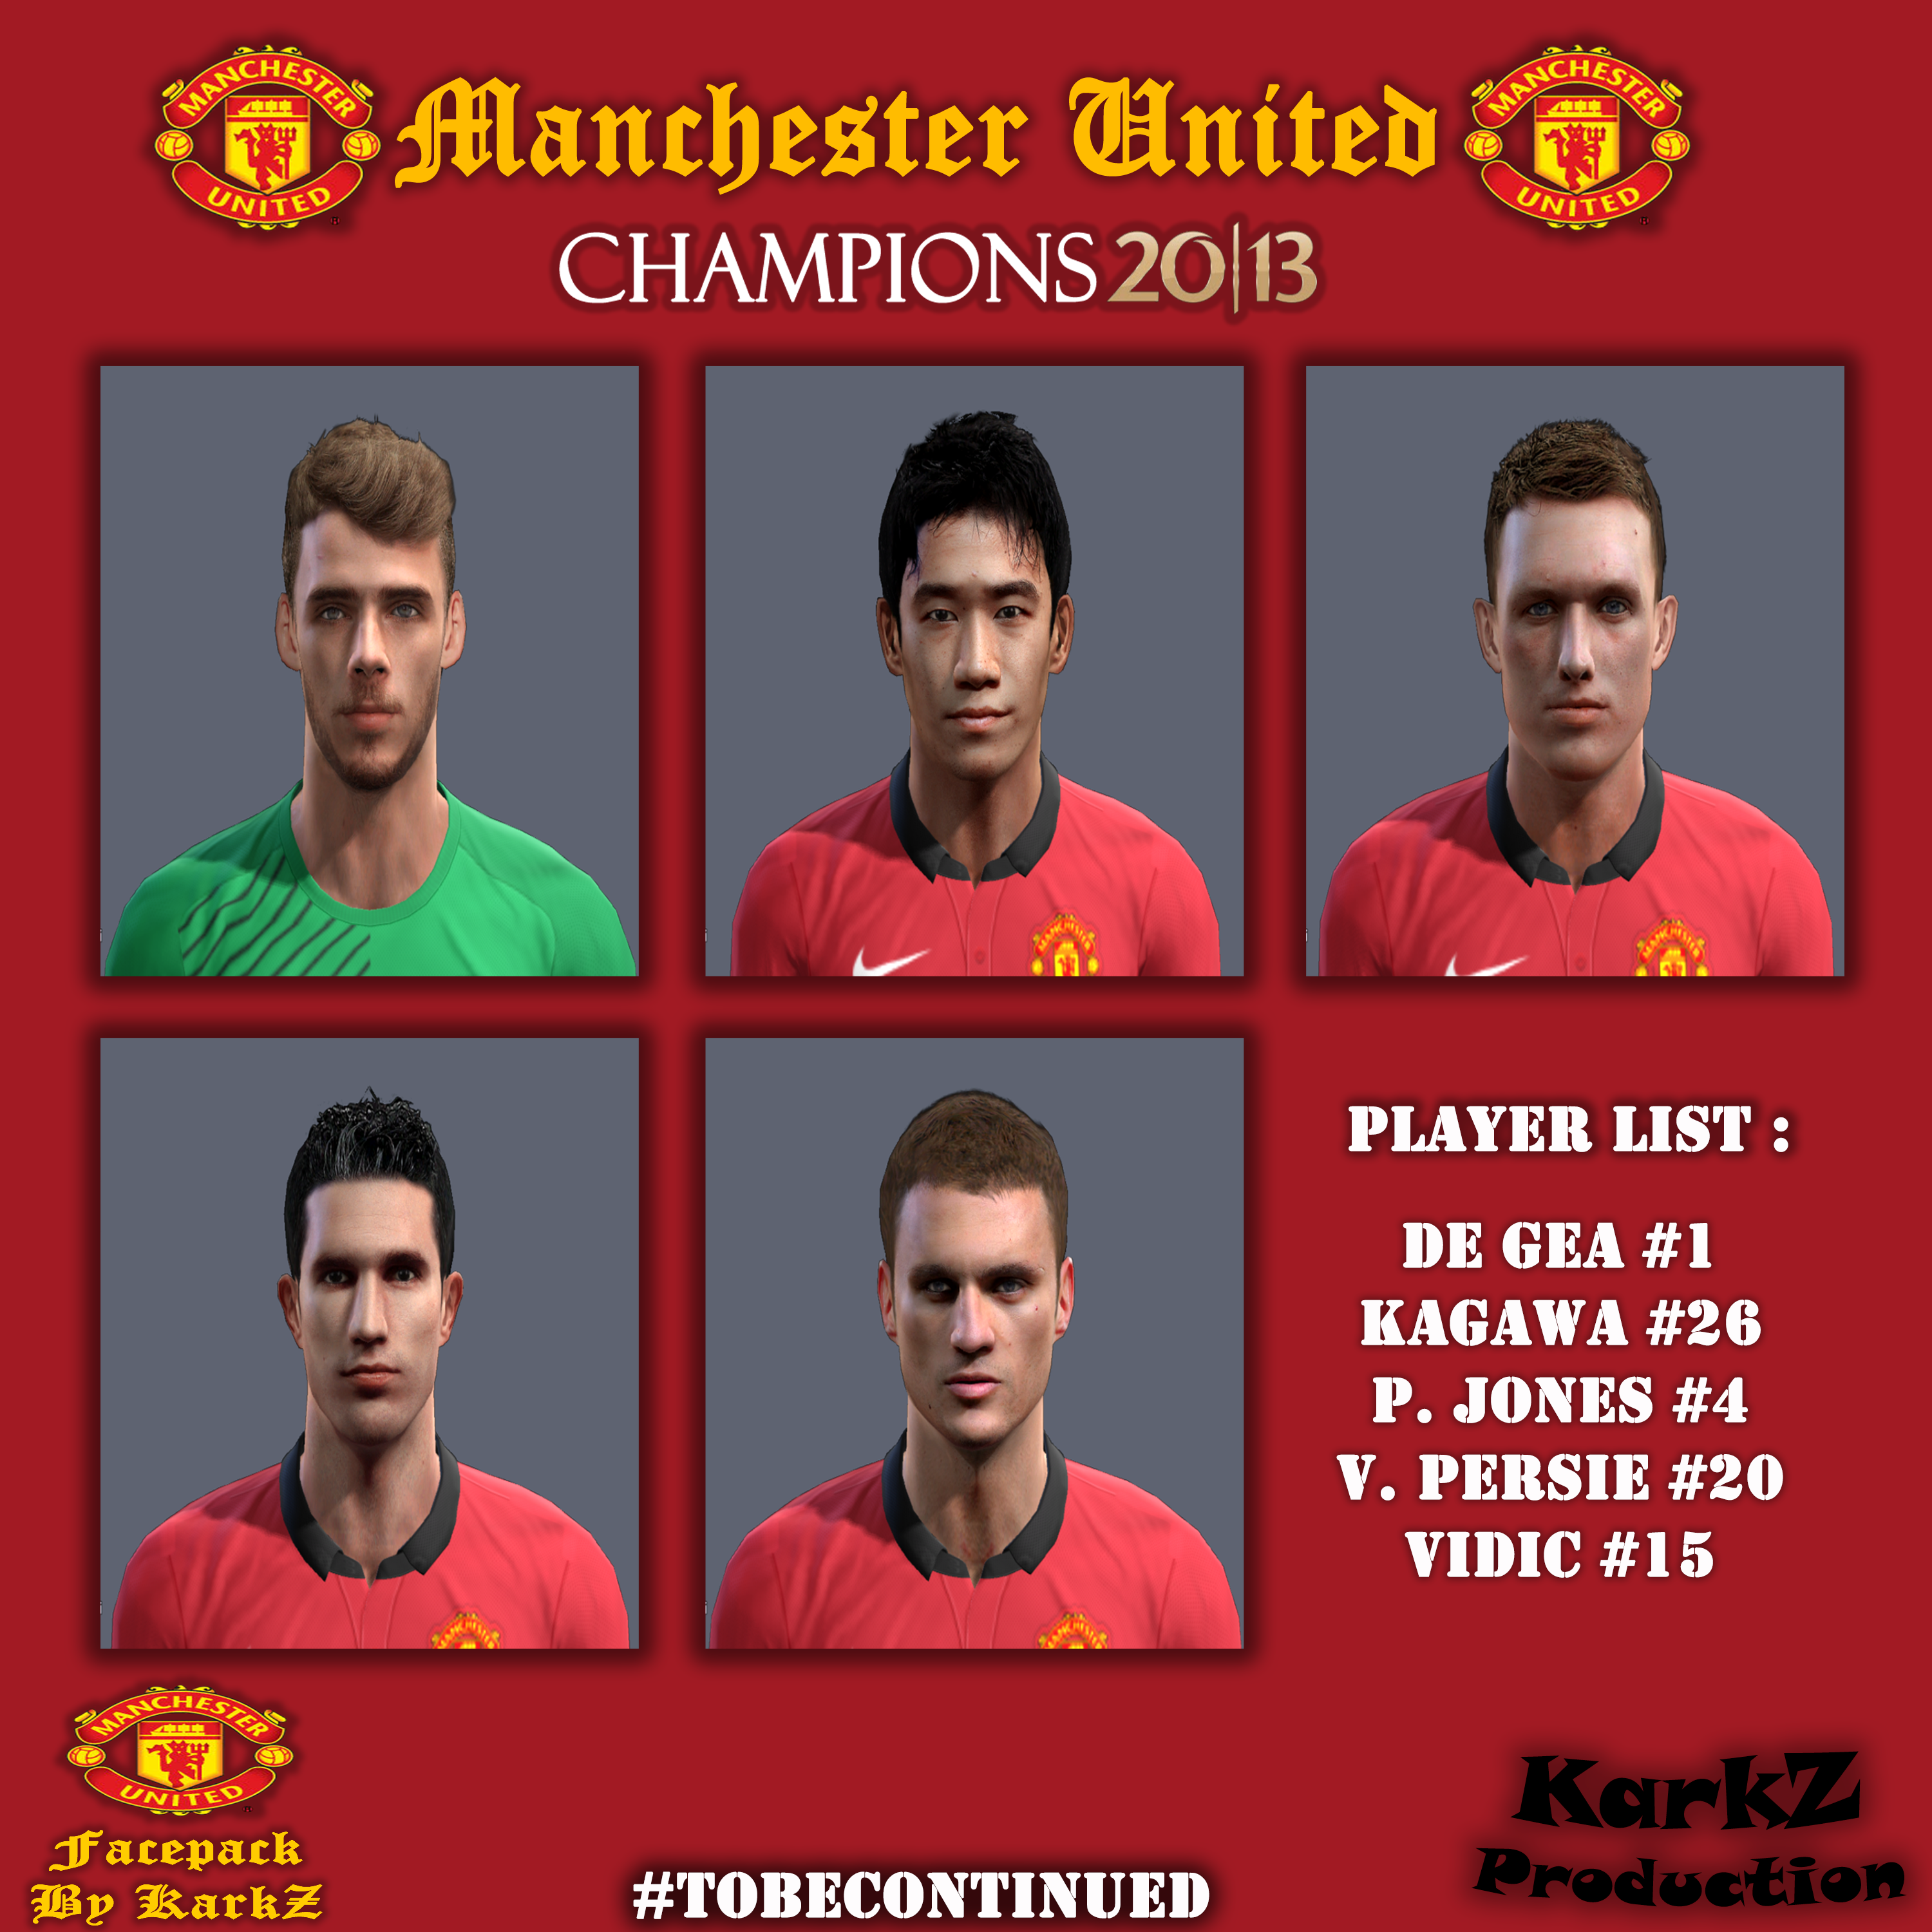 http://www.pespatchs.com/wp-content/uploads/Manchester-United-Facepack.png